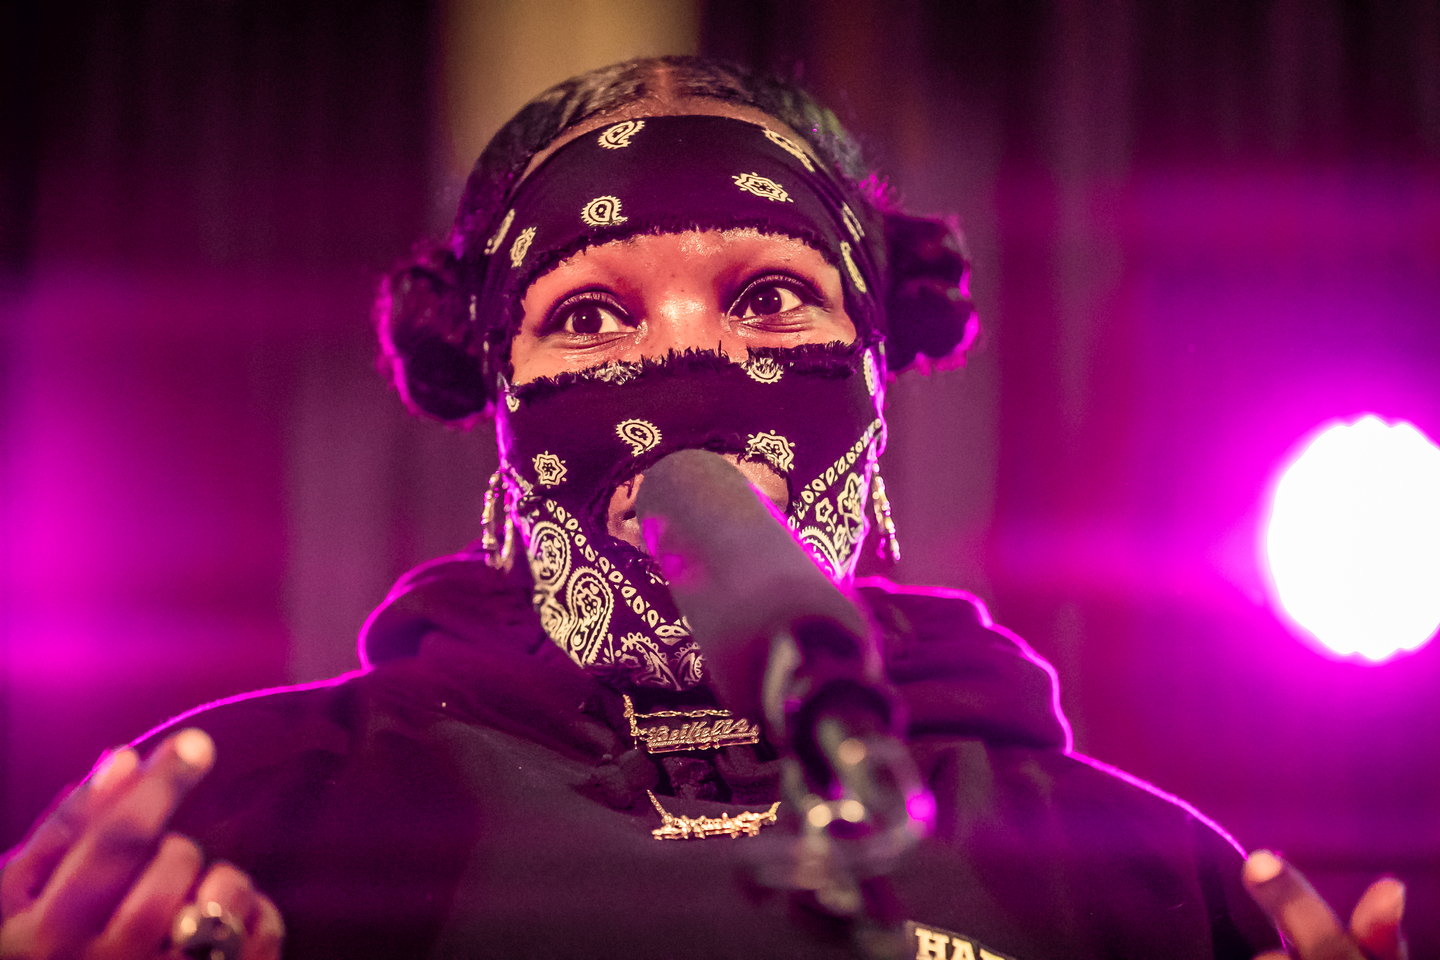 Leikeli47 performs onstage at NPR Tiny Desk Concert at Central Presbyterian Church.